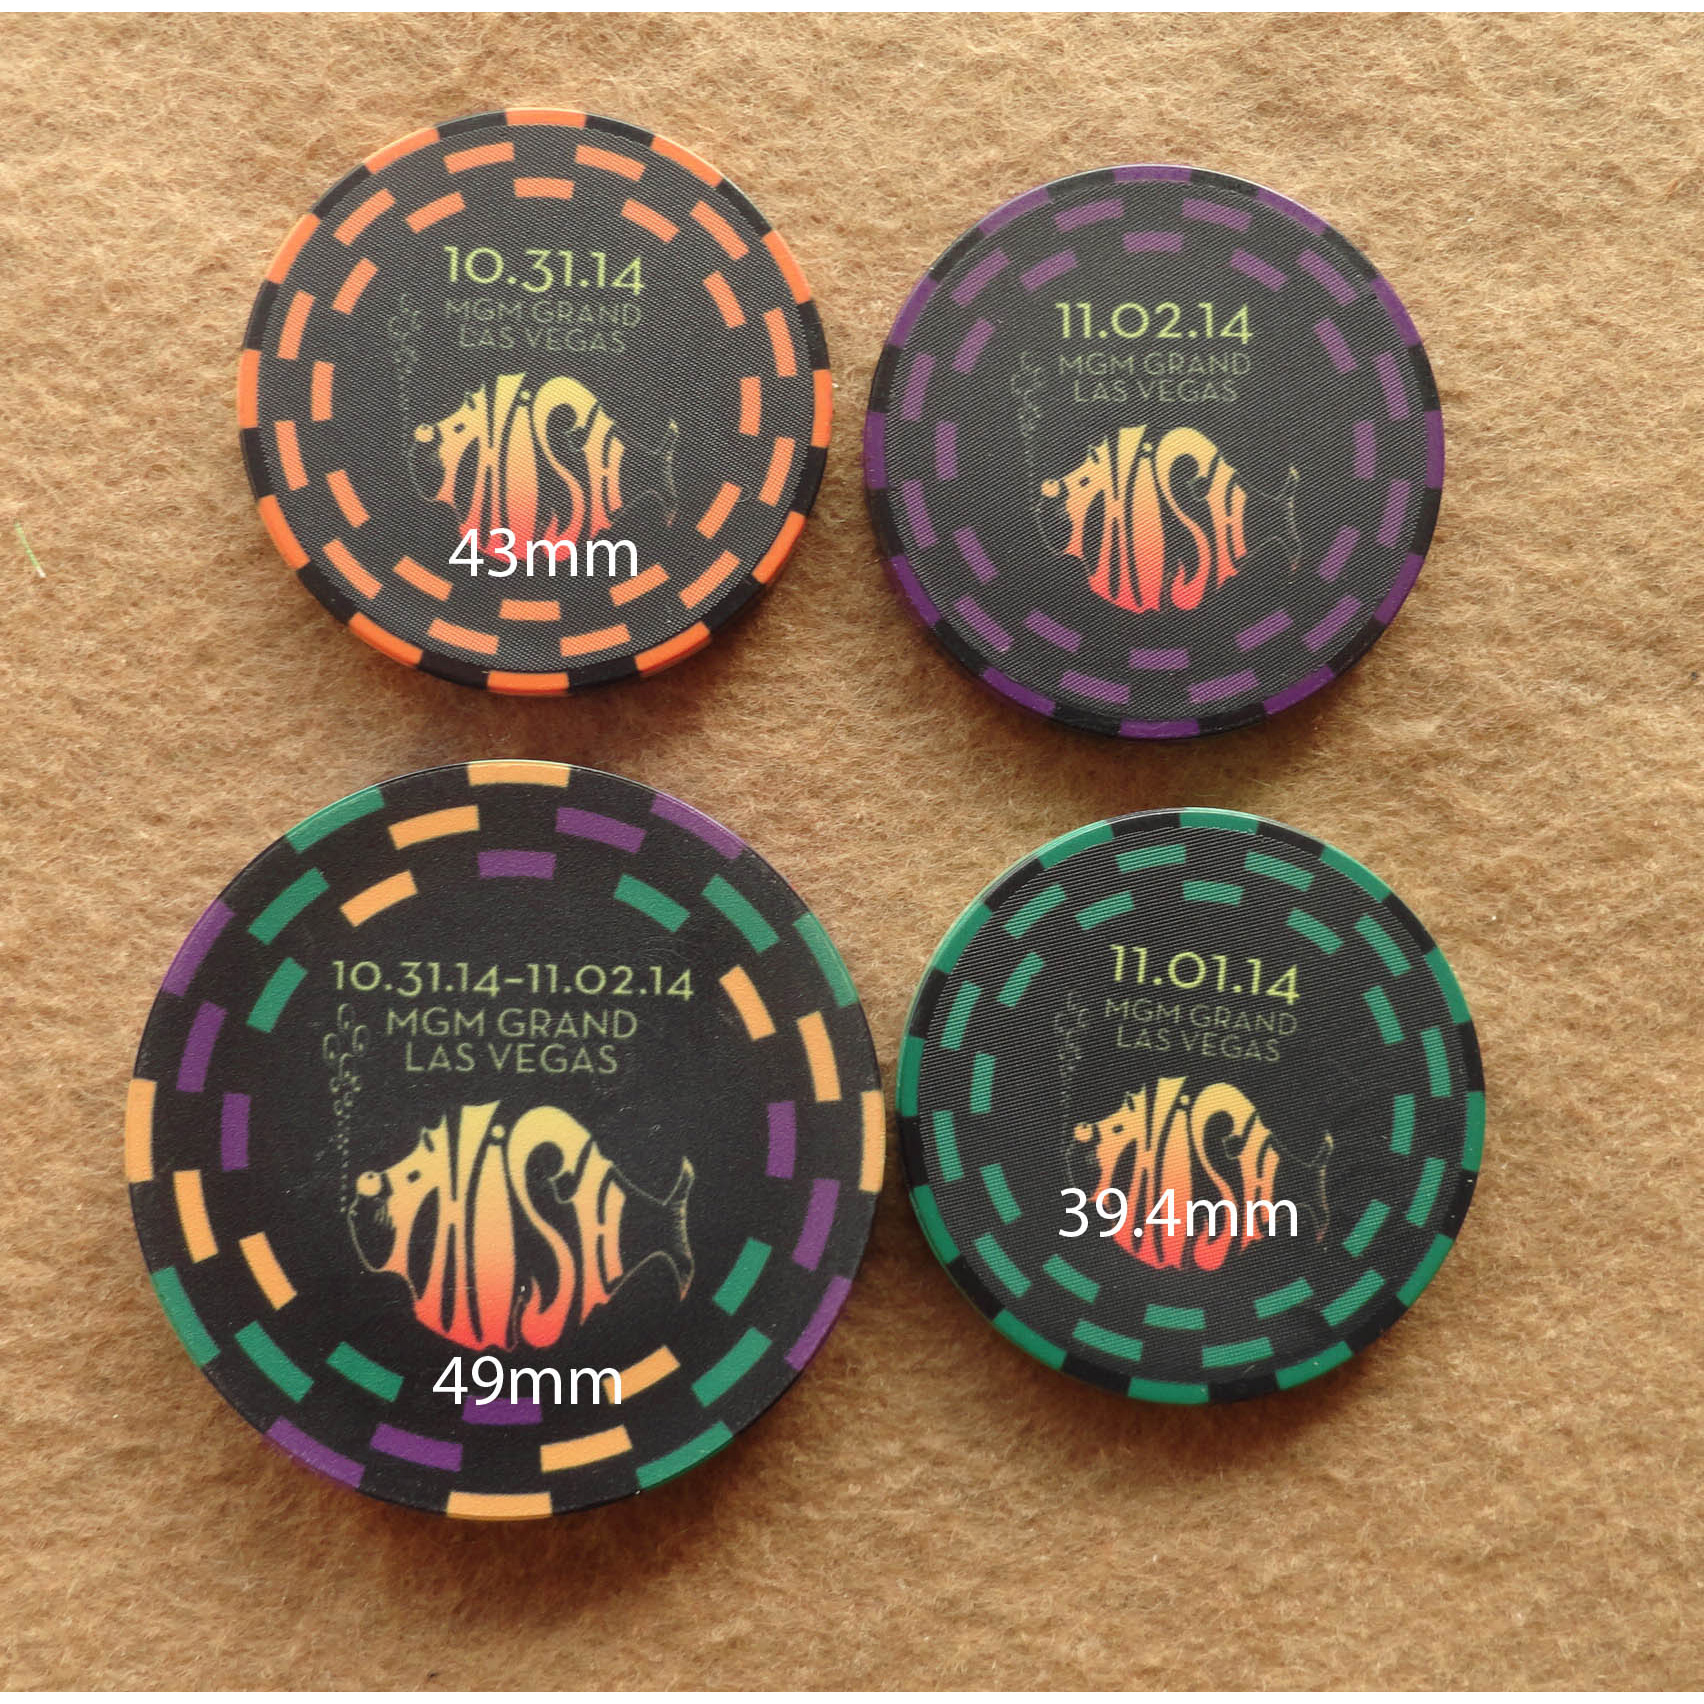 Ceramic poker chip manufacturers kit roulettes portes coulissantes